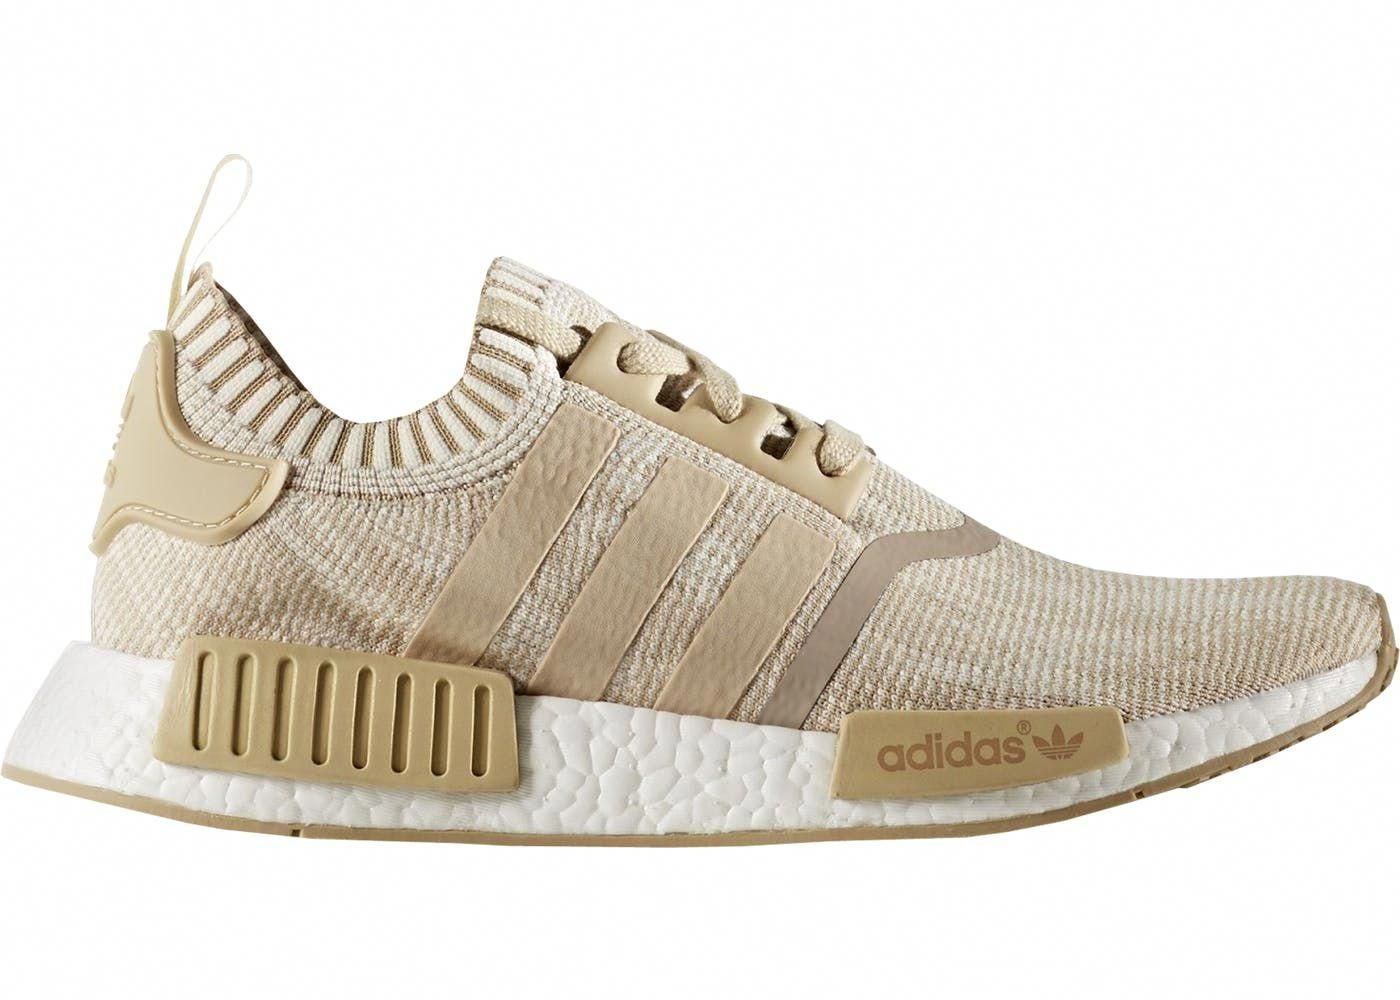 2d676b03198a2 adidas NMD R1 Linen Khaki - STYLE  BY1912 - COLORWAY  LINEN KHAKI LINEN  KHAKI OFF WHITE - RETAIL PRICE   170 - RELEASE DATE  2017-05-20   MensFashionSneakers